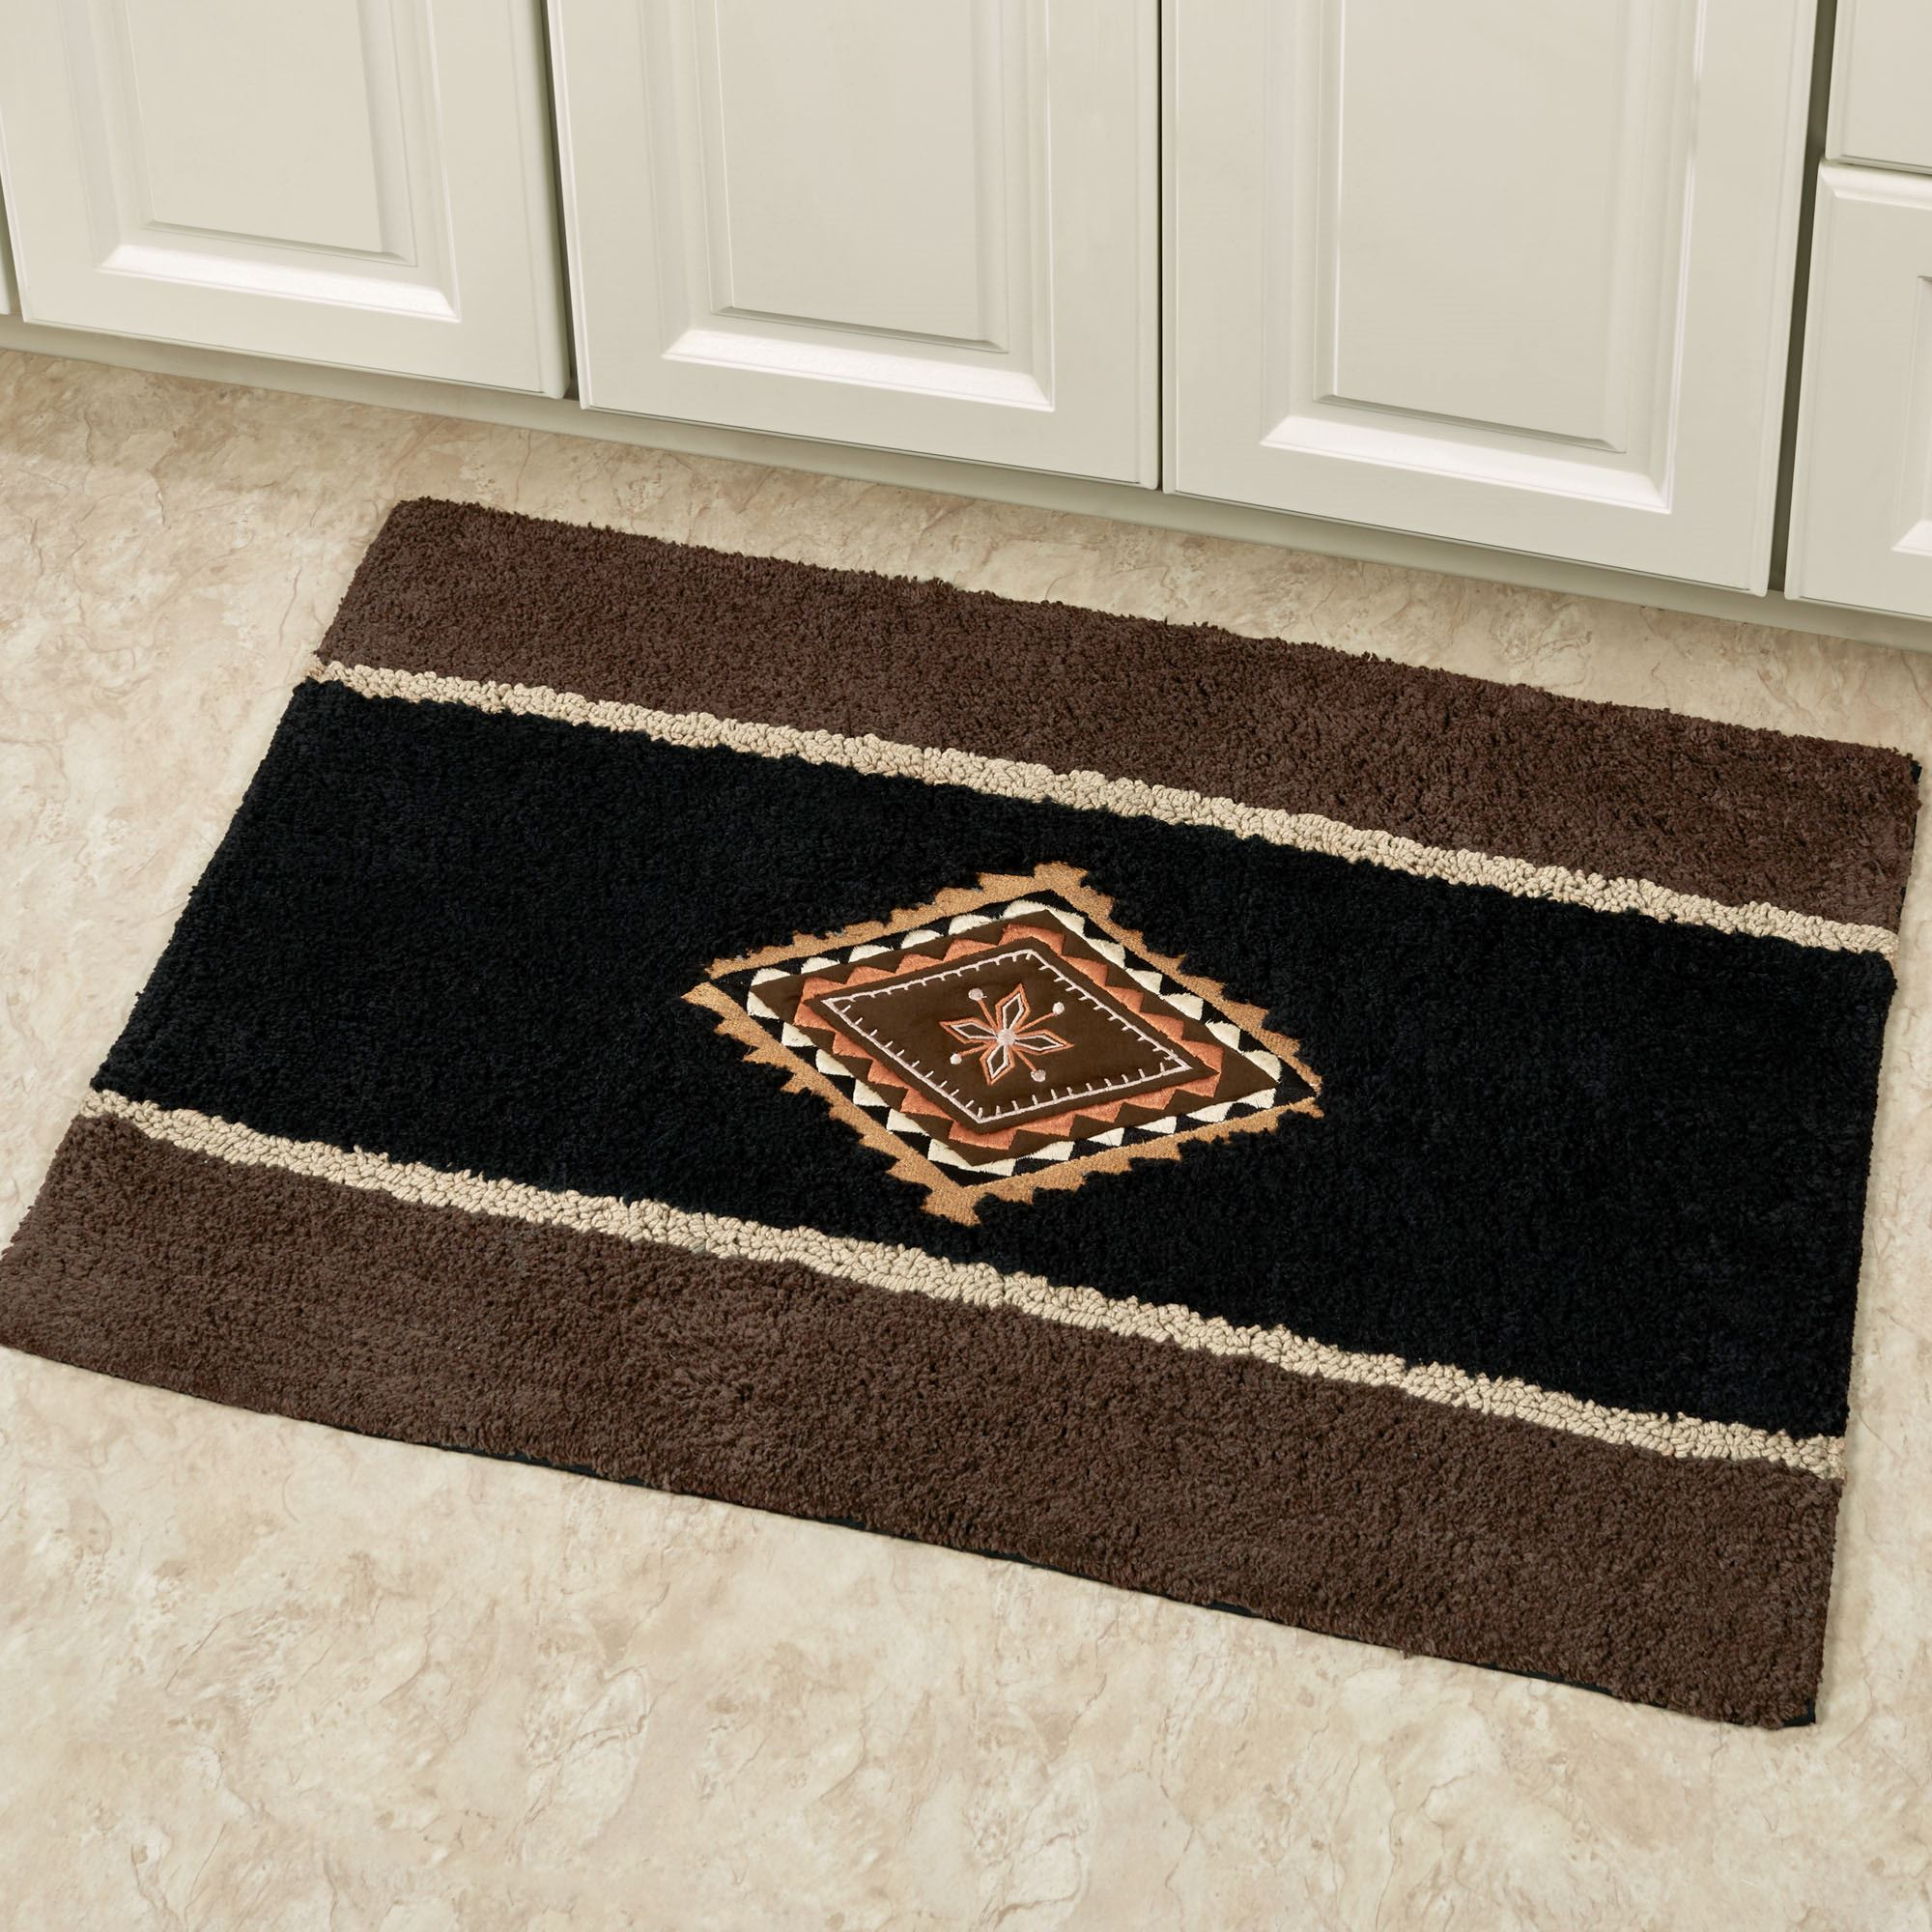 bathroom rug shipping bella loop fluffy bedding product free today overstock clairebella rugs bath noodle x